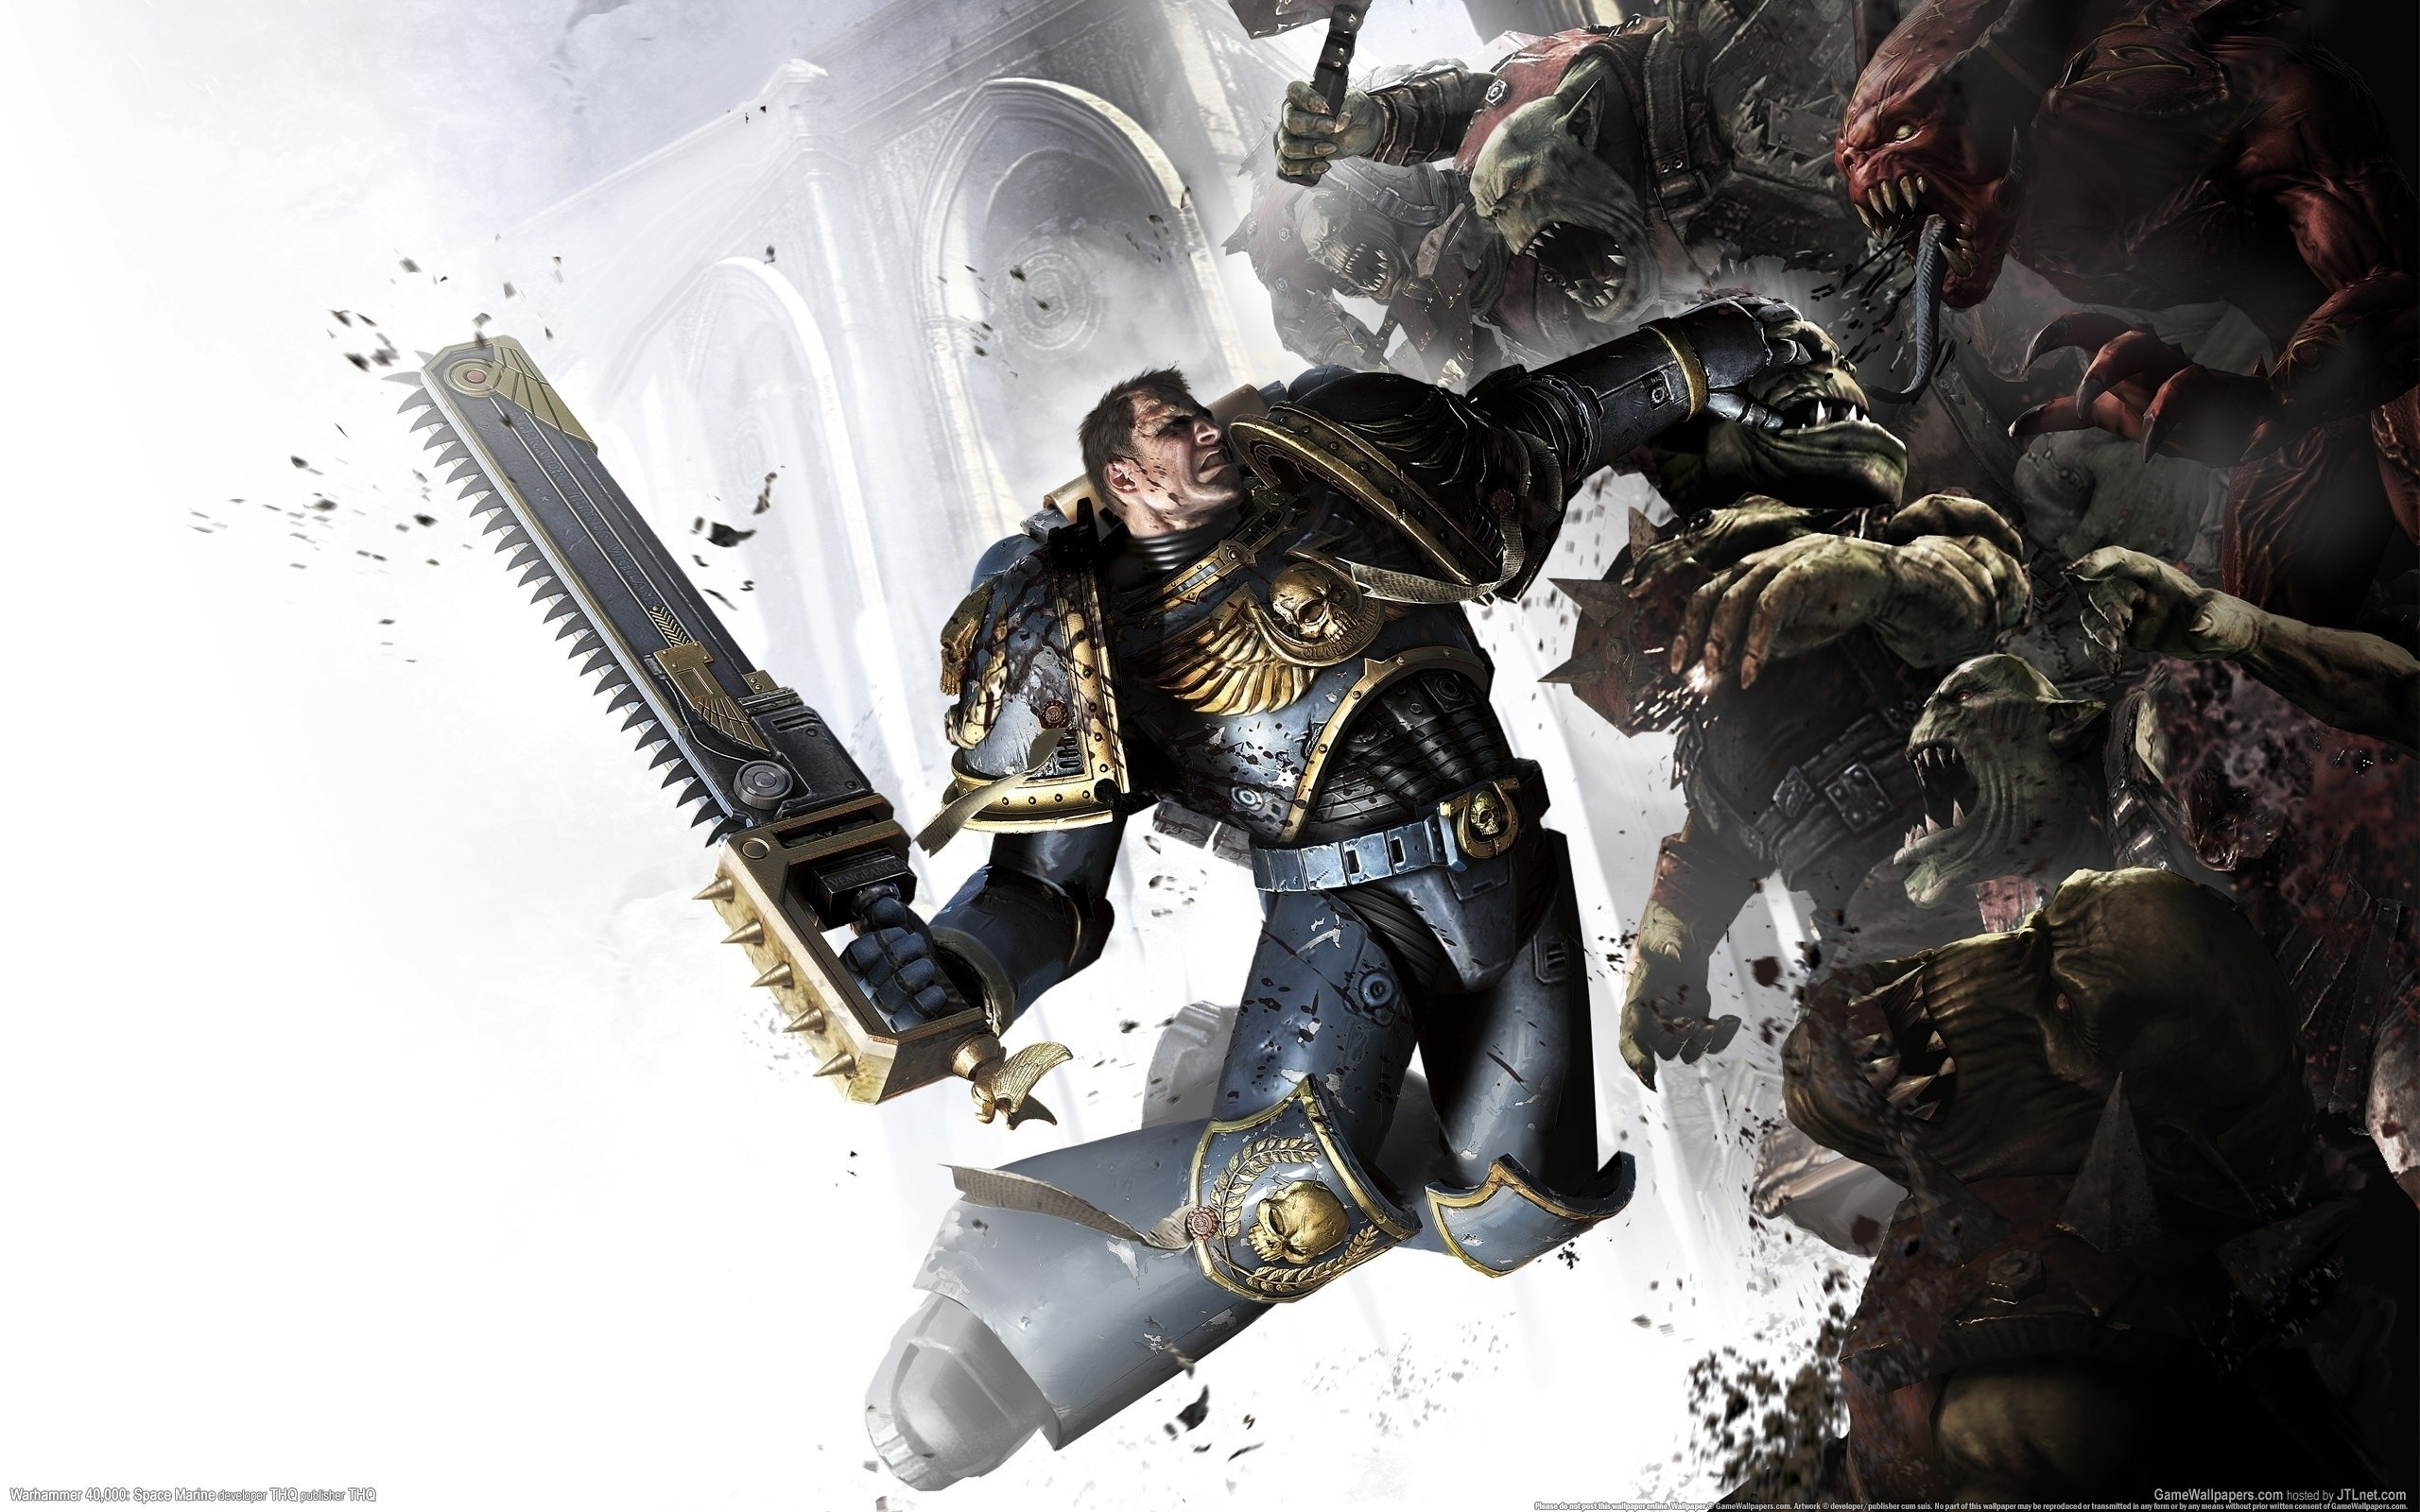 warhammer 40k wallpaper ·① download free awesome full hd wallpapers